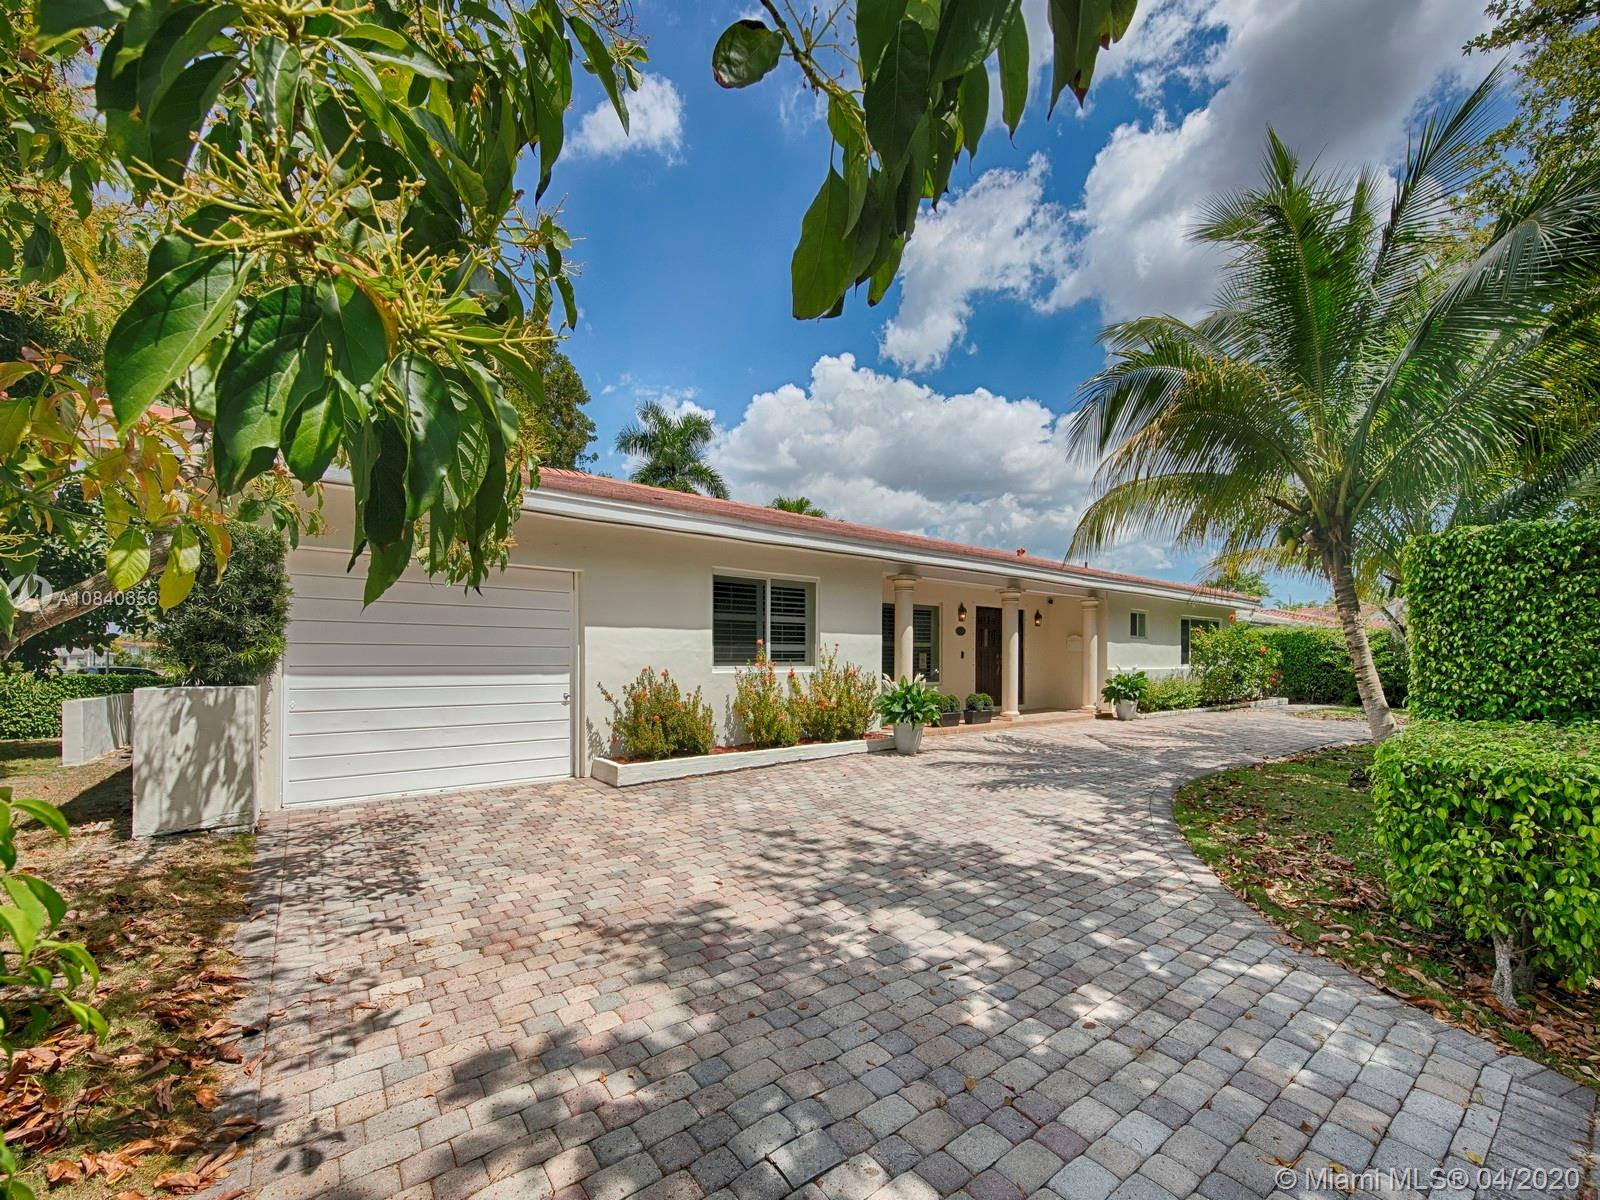 345 Romano Ave, Coral Gables, Florida 33134, 3 Bedrooms Bedrooms, ,3 BathroomsBathrooms,Residential,For Sale,345 Romano Ave,A10840356